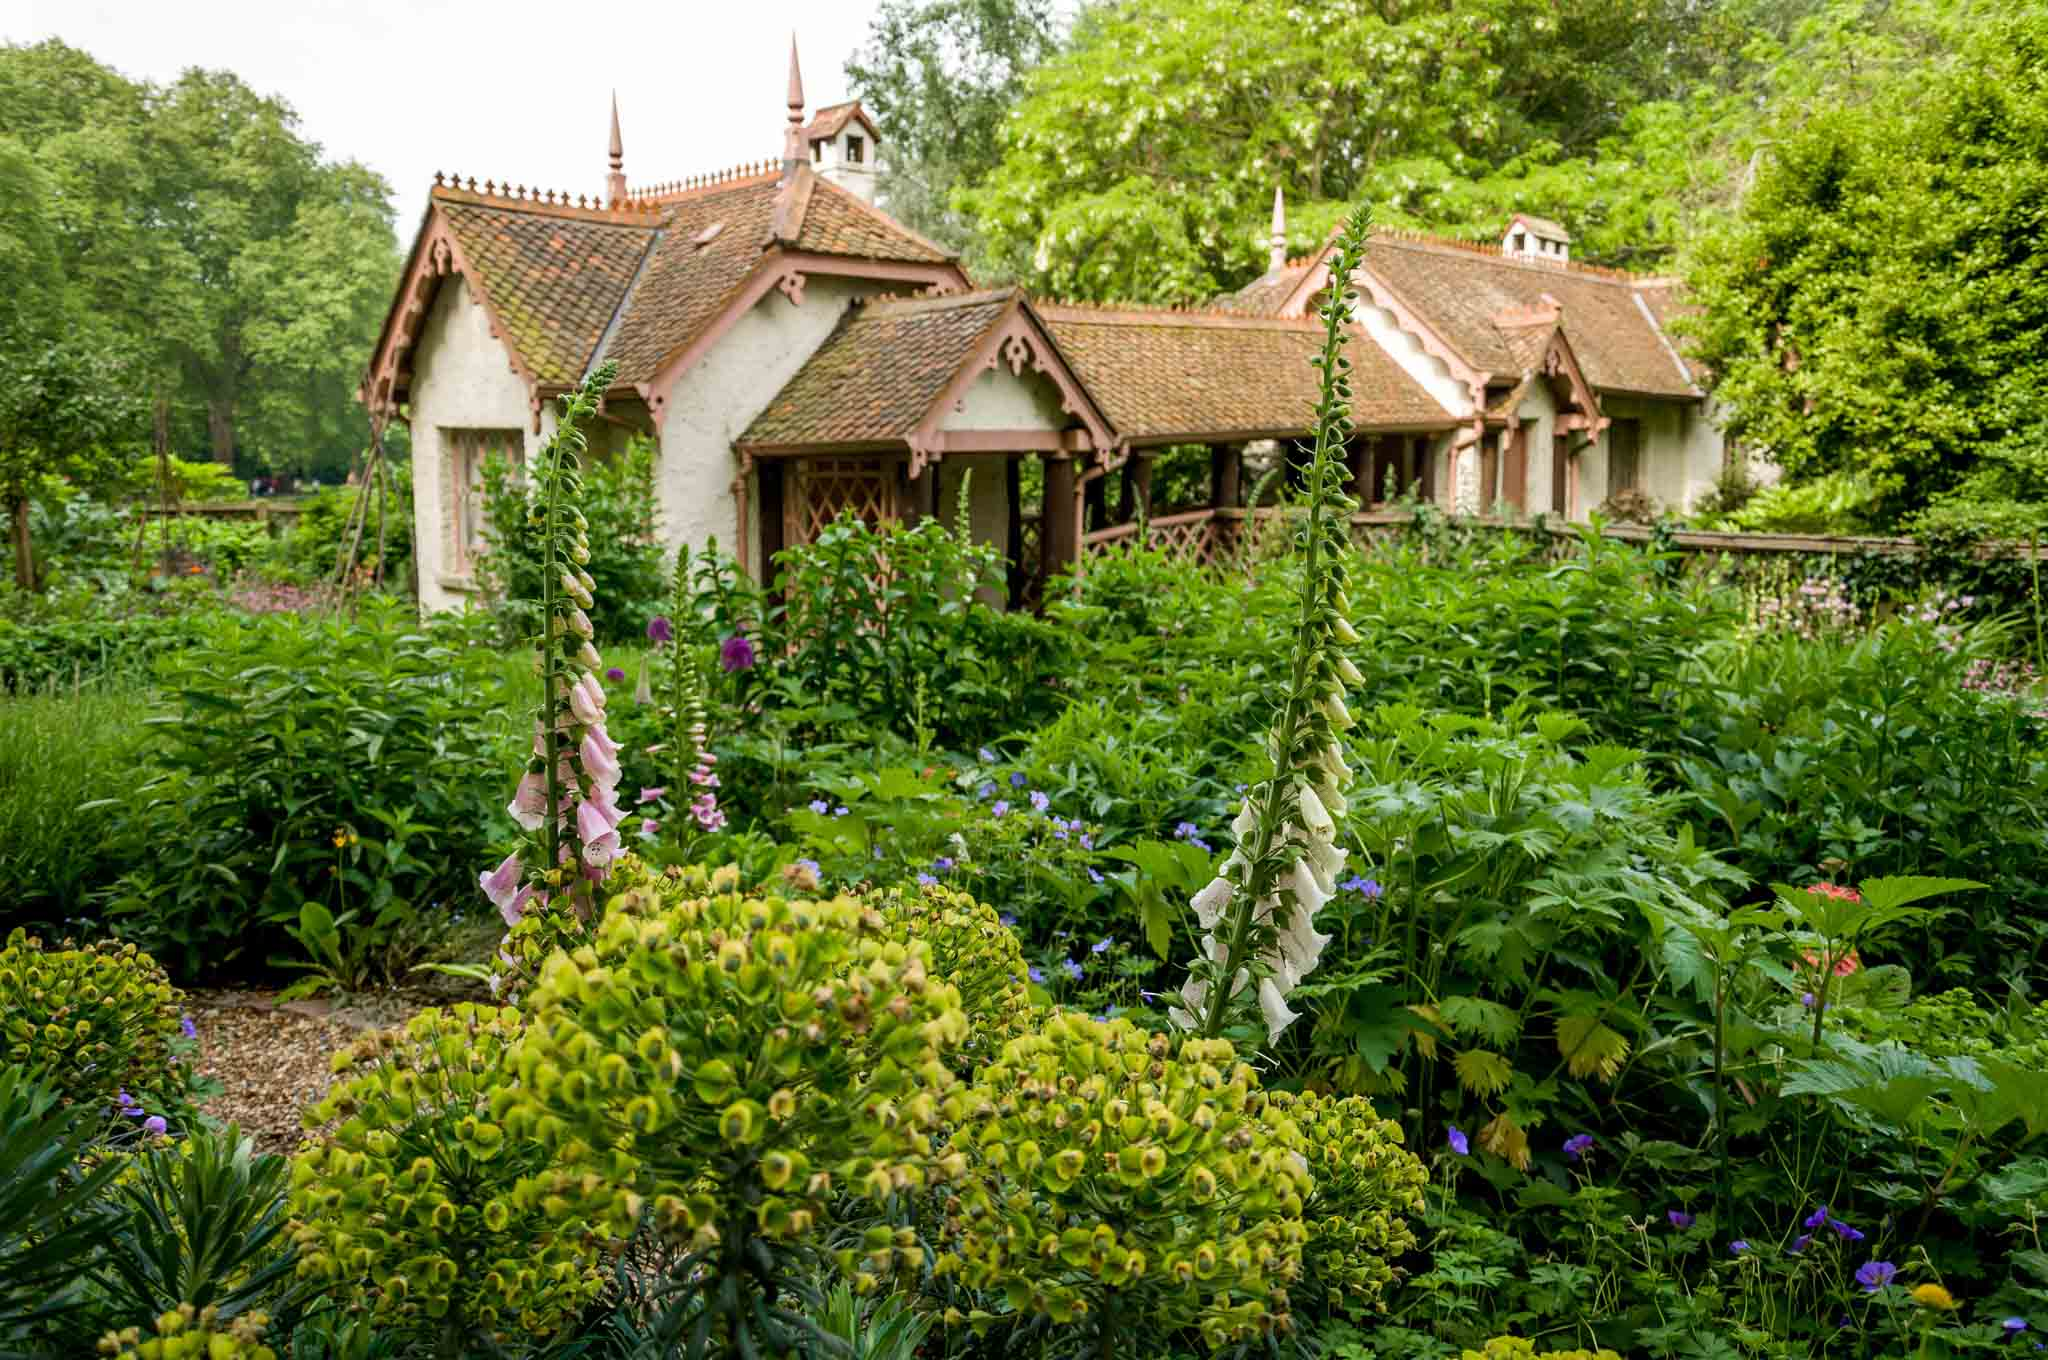 Cottage surrounded by plants and flowers